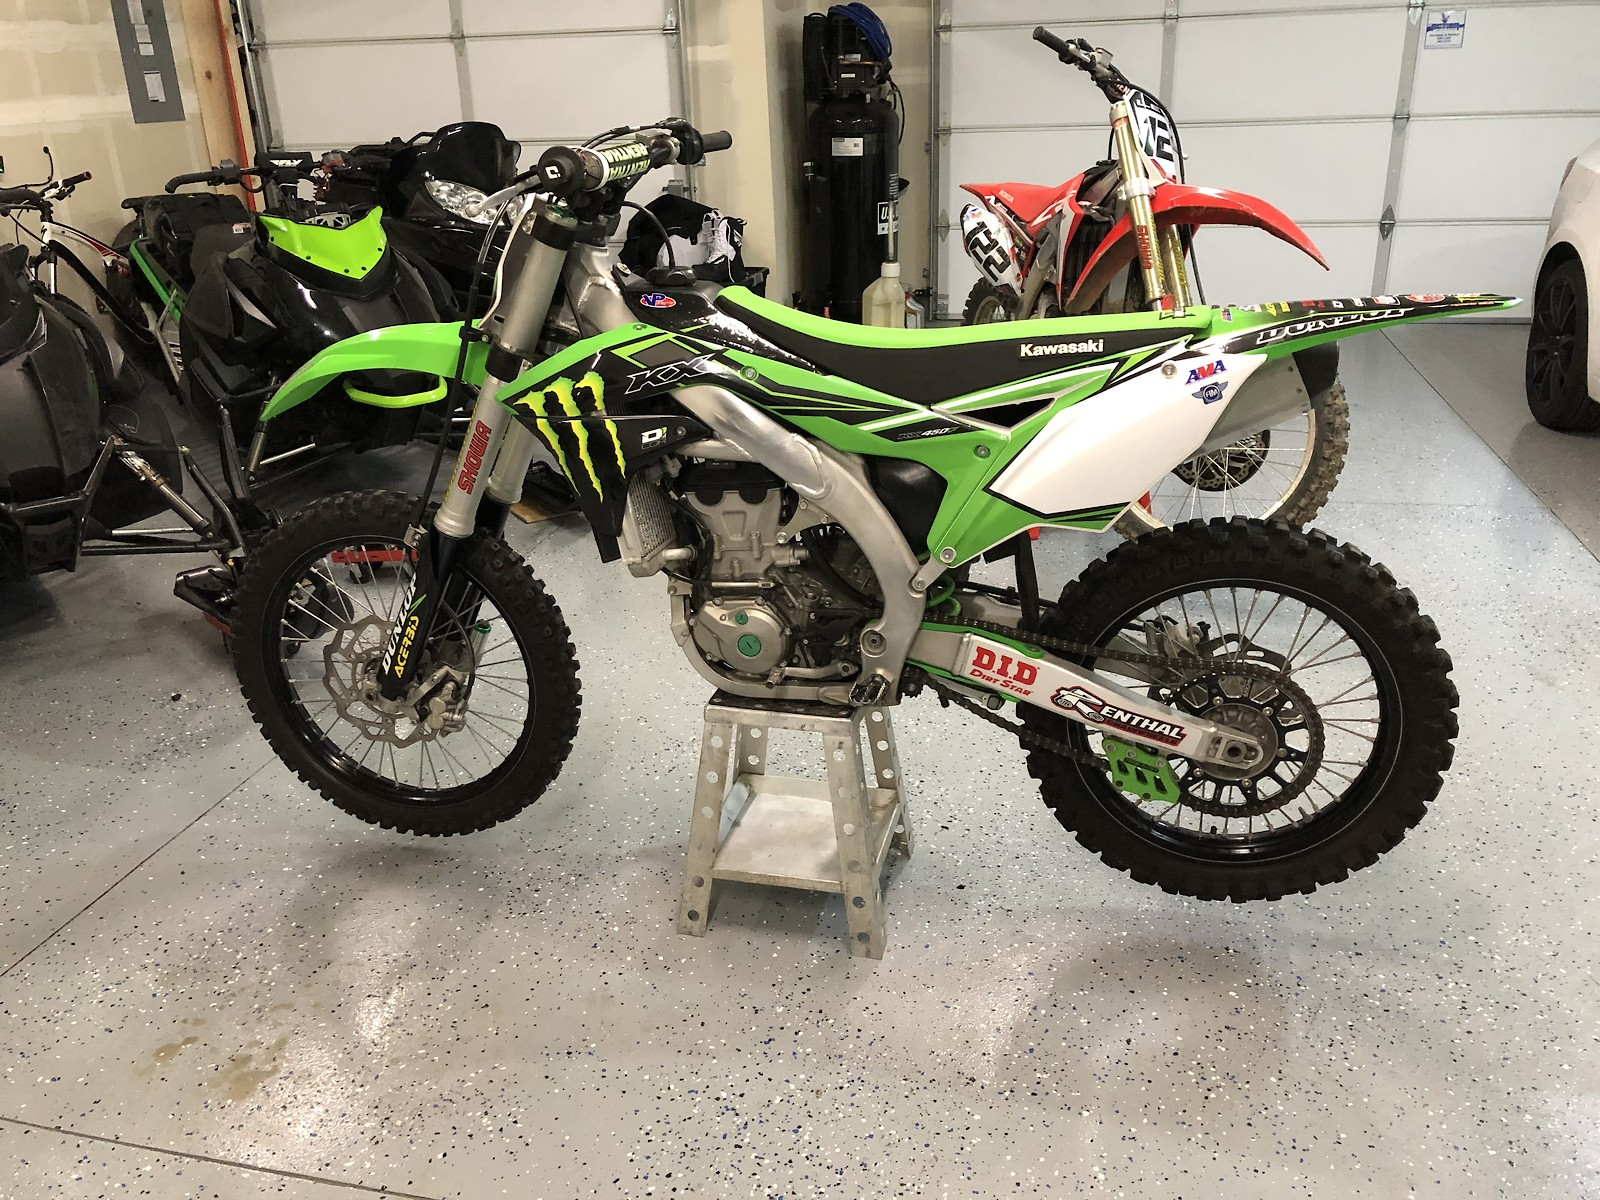 2017 Kawasaki Kx450f Under 15 Hrs 5500 For Salebazaar